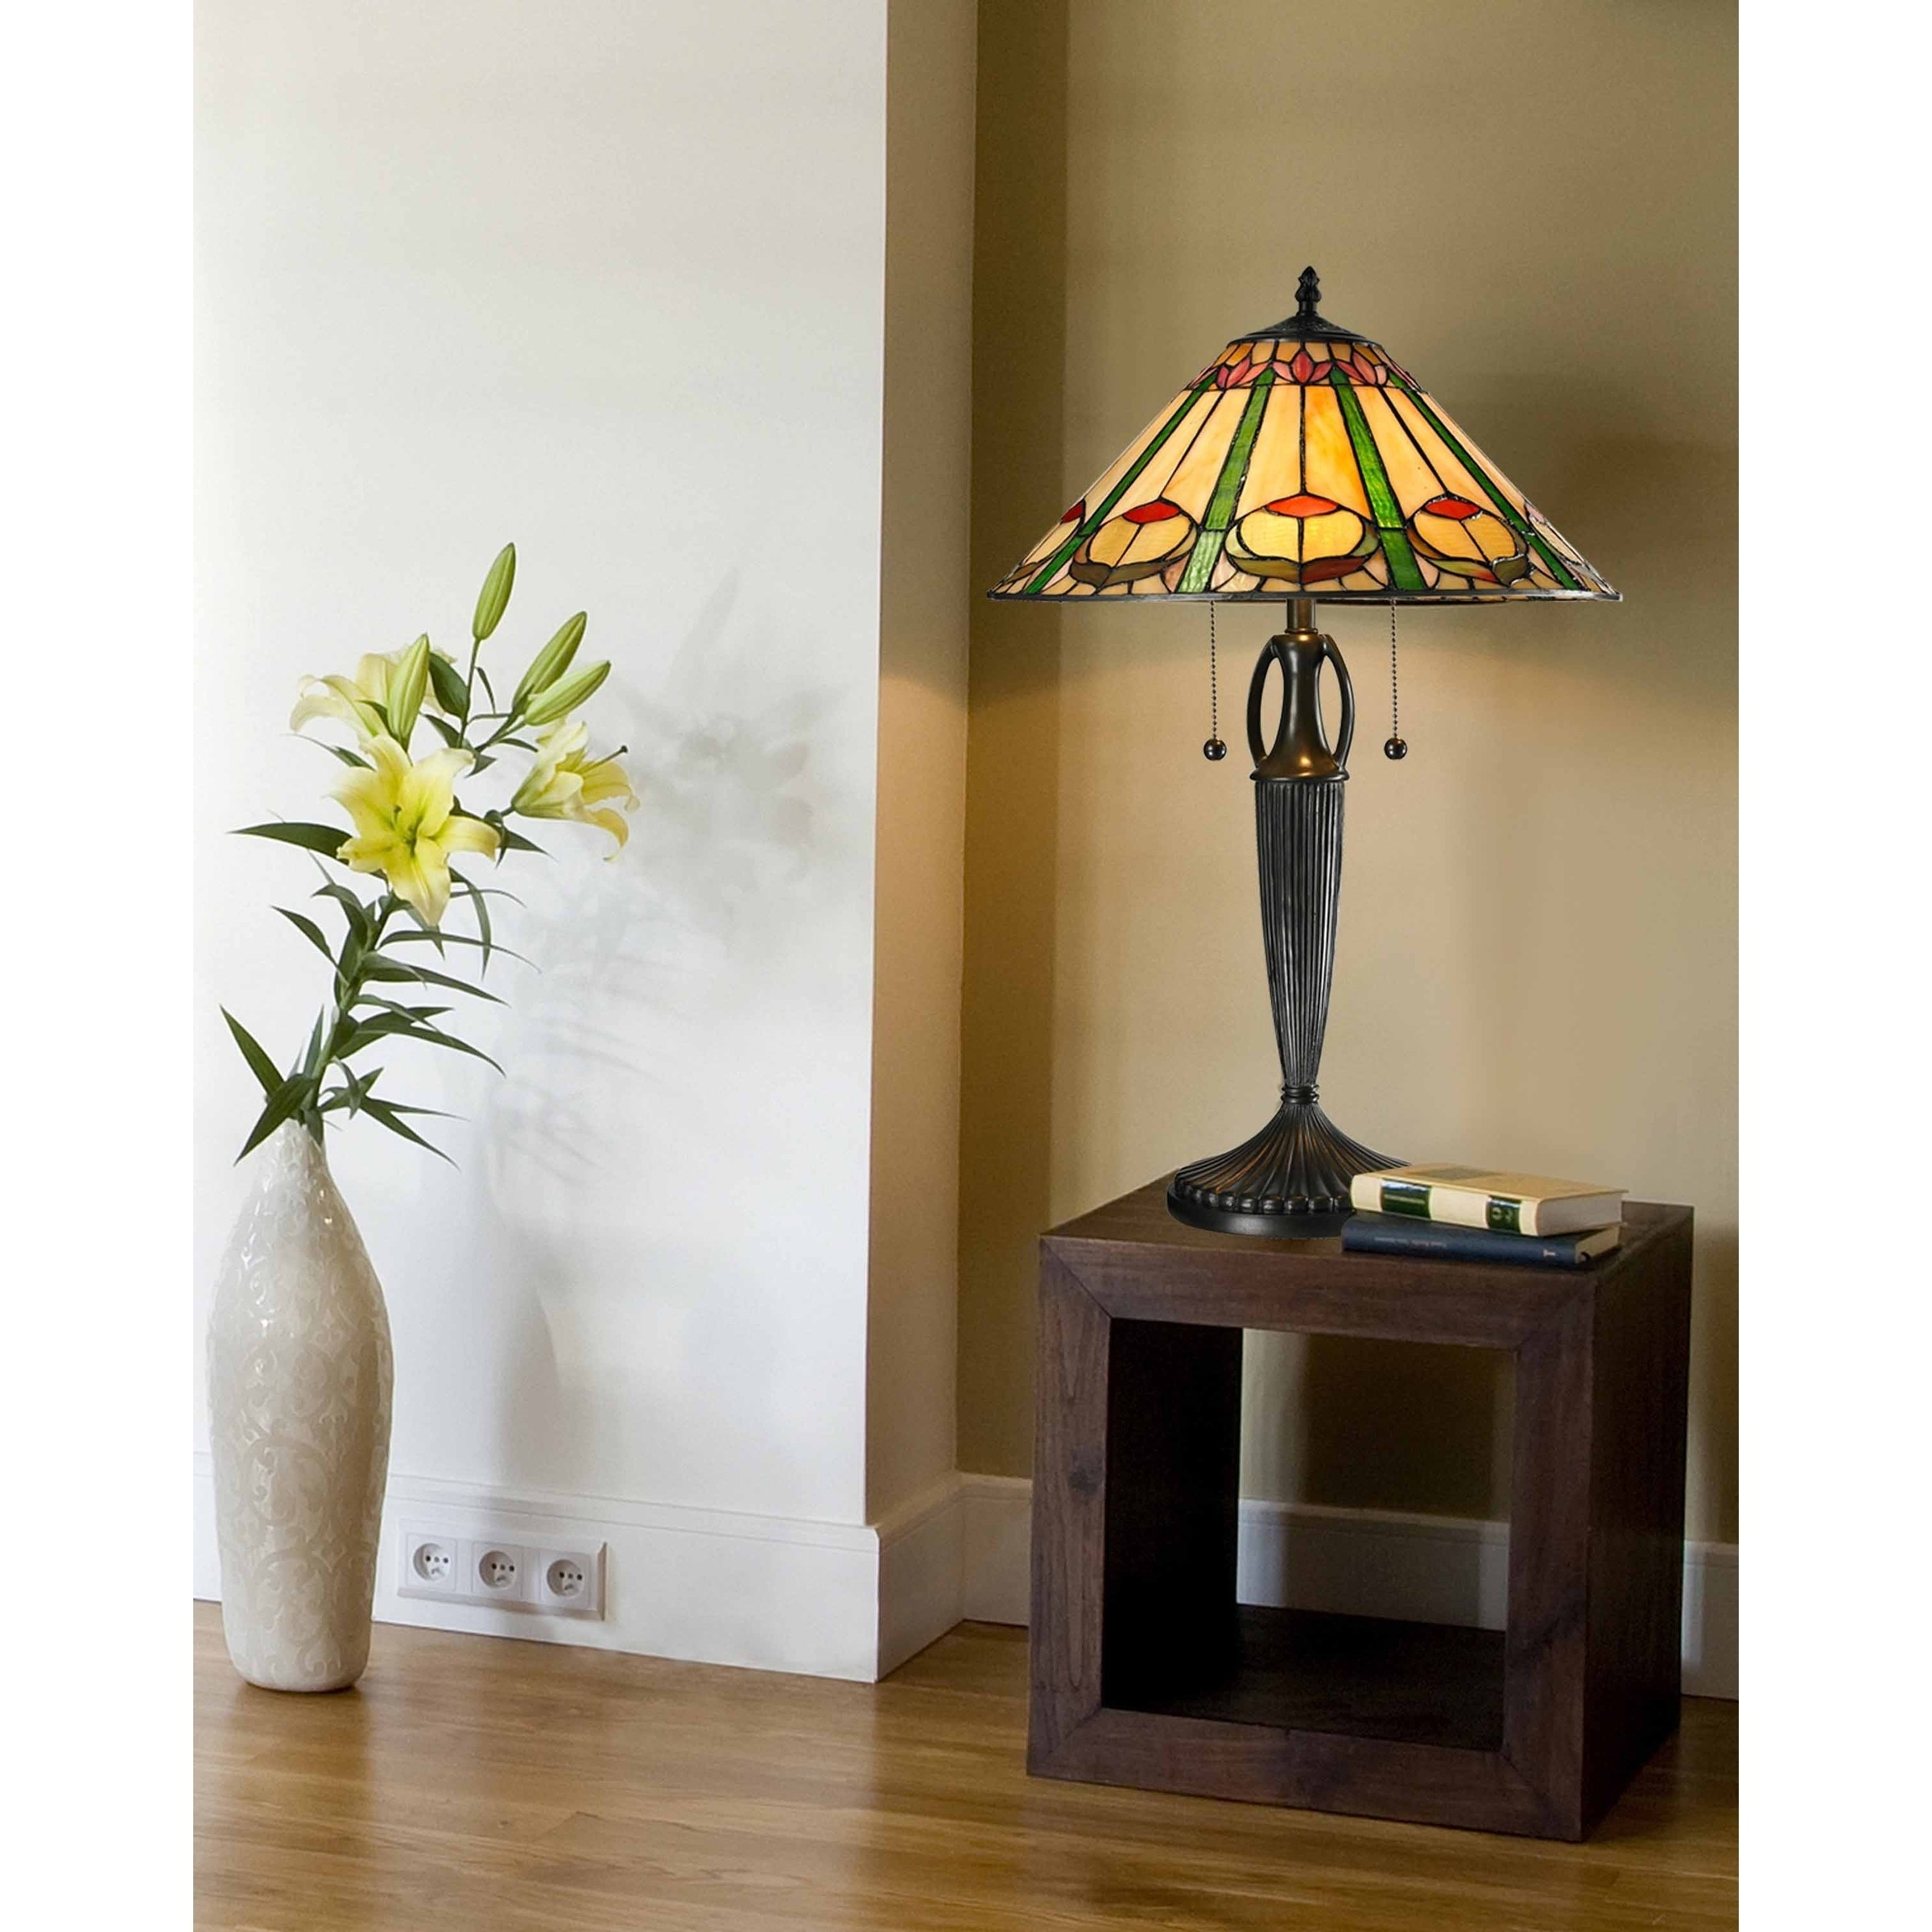 springdale quill table lamp free shipping dale tiffany select accent lamps today brass for living room outdoor wicker coffee with glass top shelf behind couch modern teak